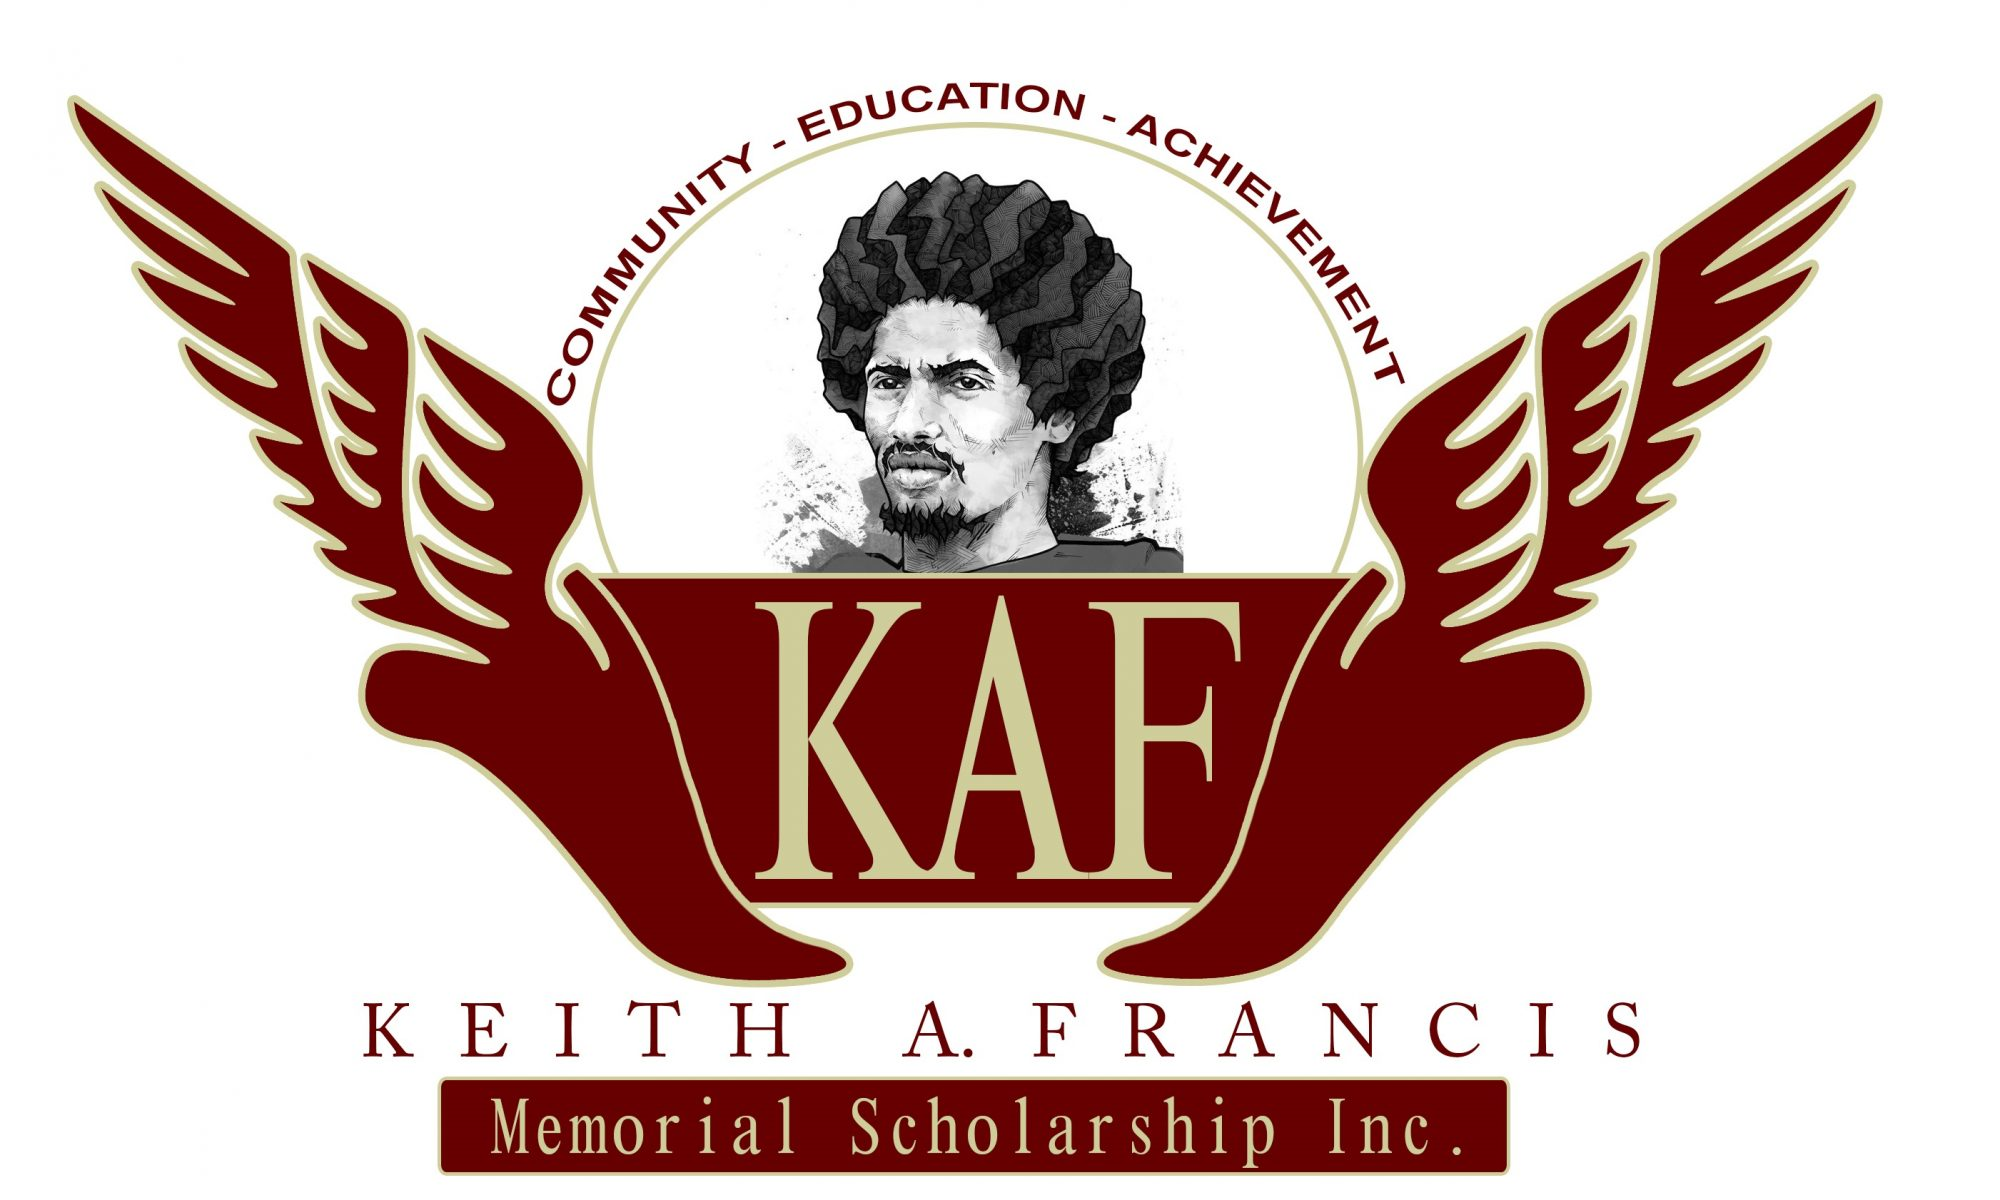 Keith A. Francis Memorial Scholarship, Inc.